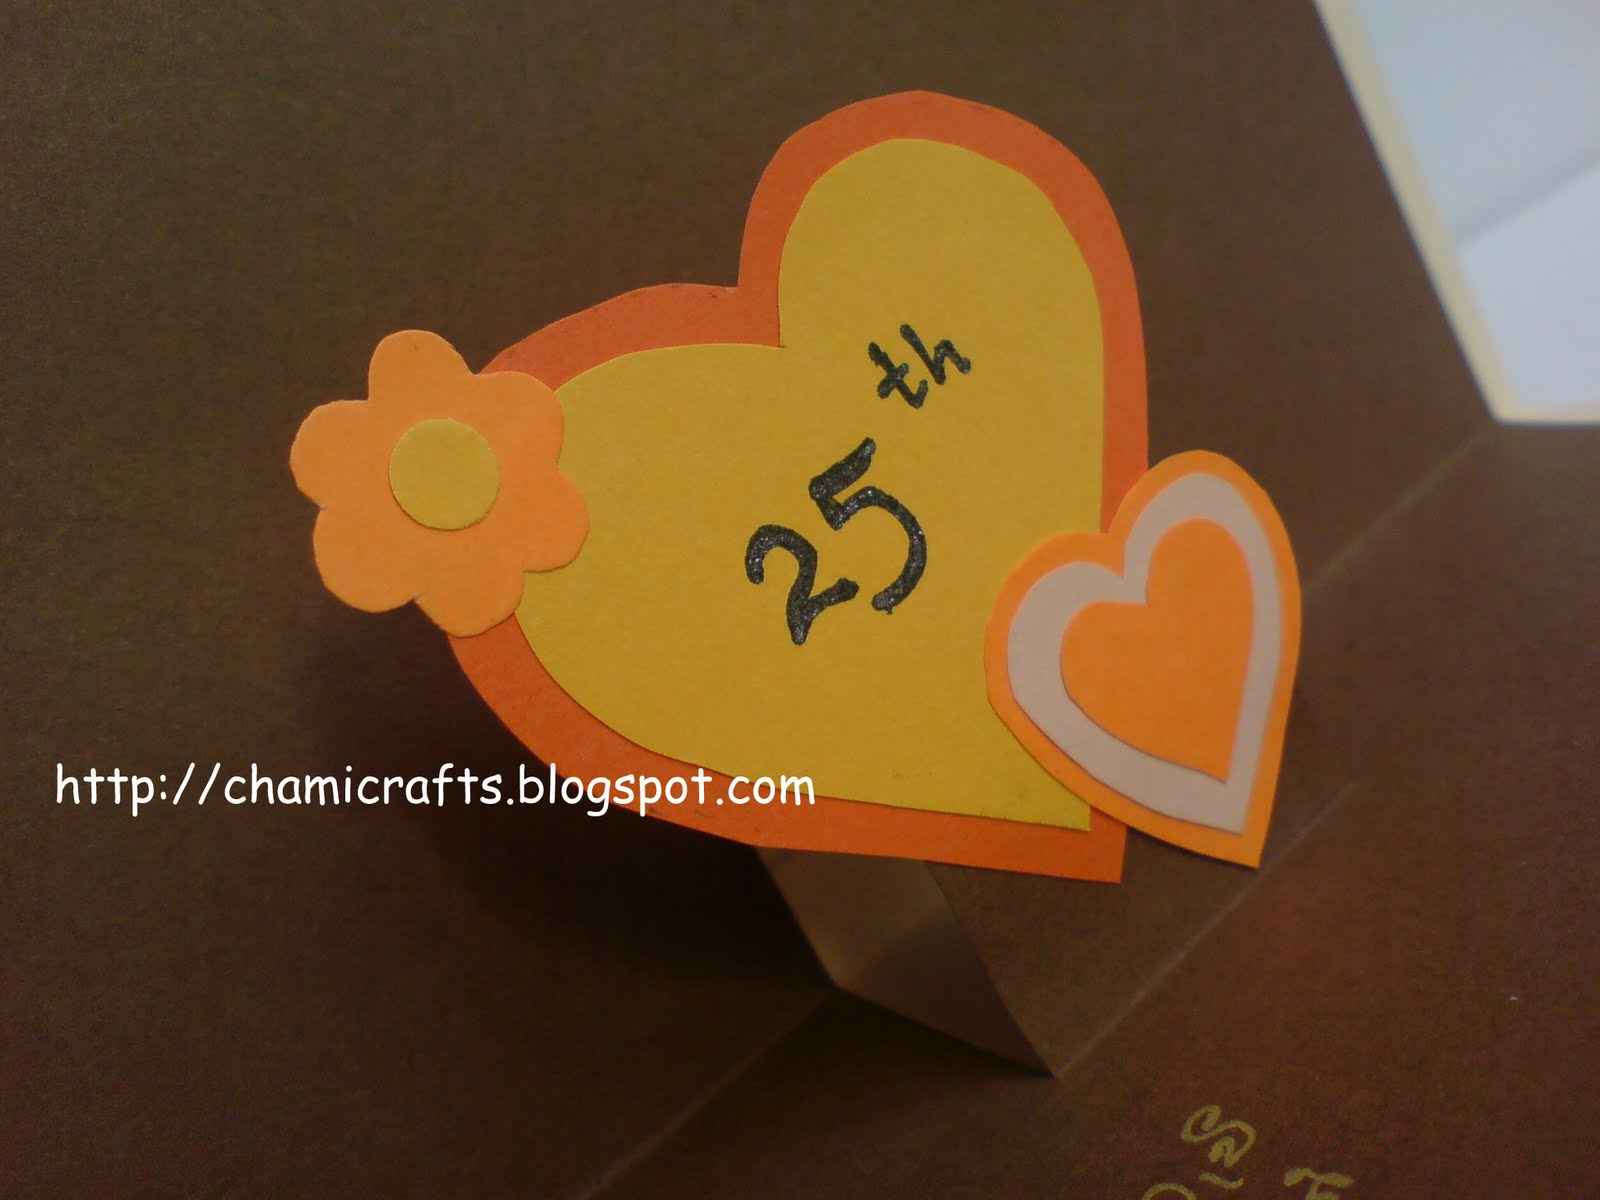 Chami crafts handmade greeting cards may 2011 for Anniversary craft ideas for parents